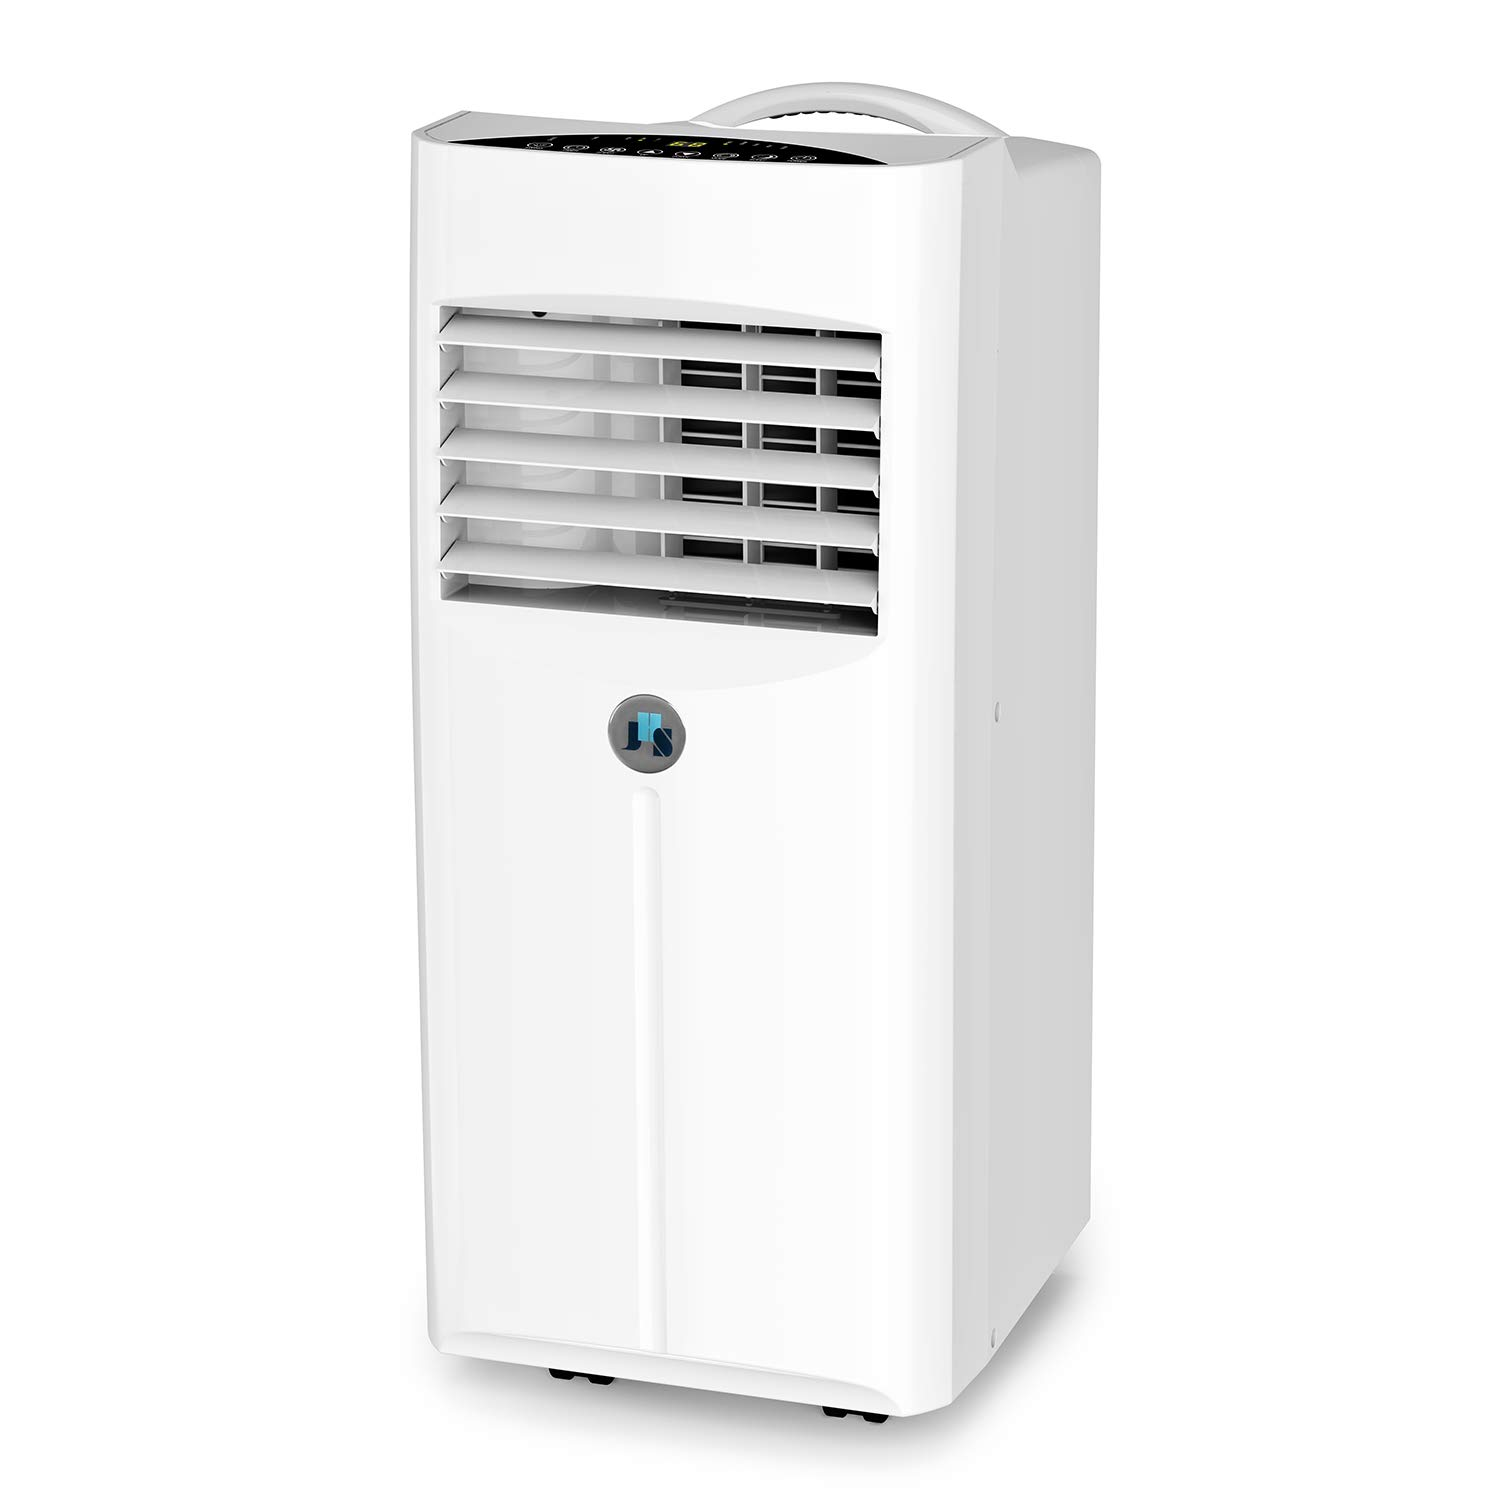 JHS 10,000 BTU Portable AC Unit for Rooms, Air Conditioner Portable with Dehumidifier and Fan, Remote Control, Digital LED Display, 220 Sq.Ft